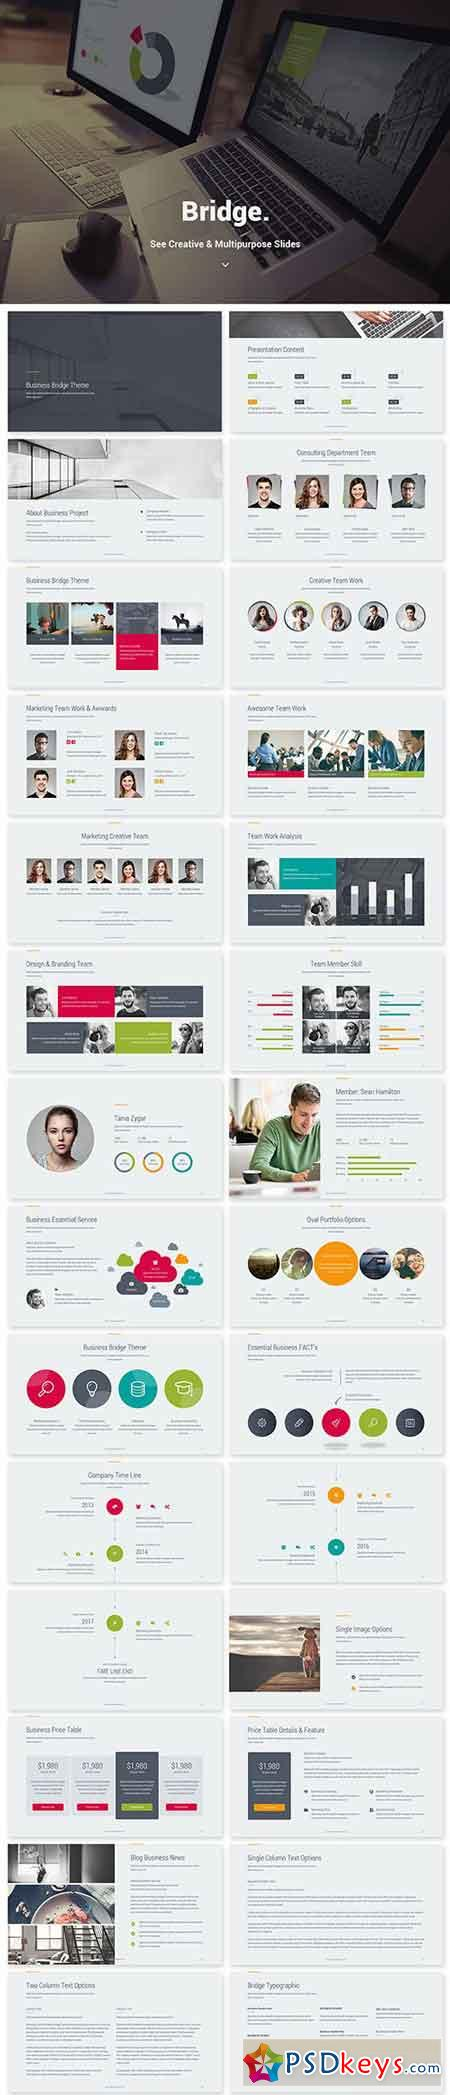 Bridge Creative Business Theme (Keynote) 20593939